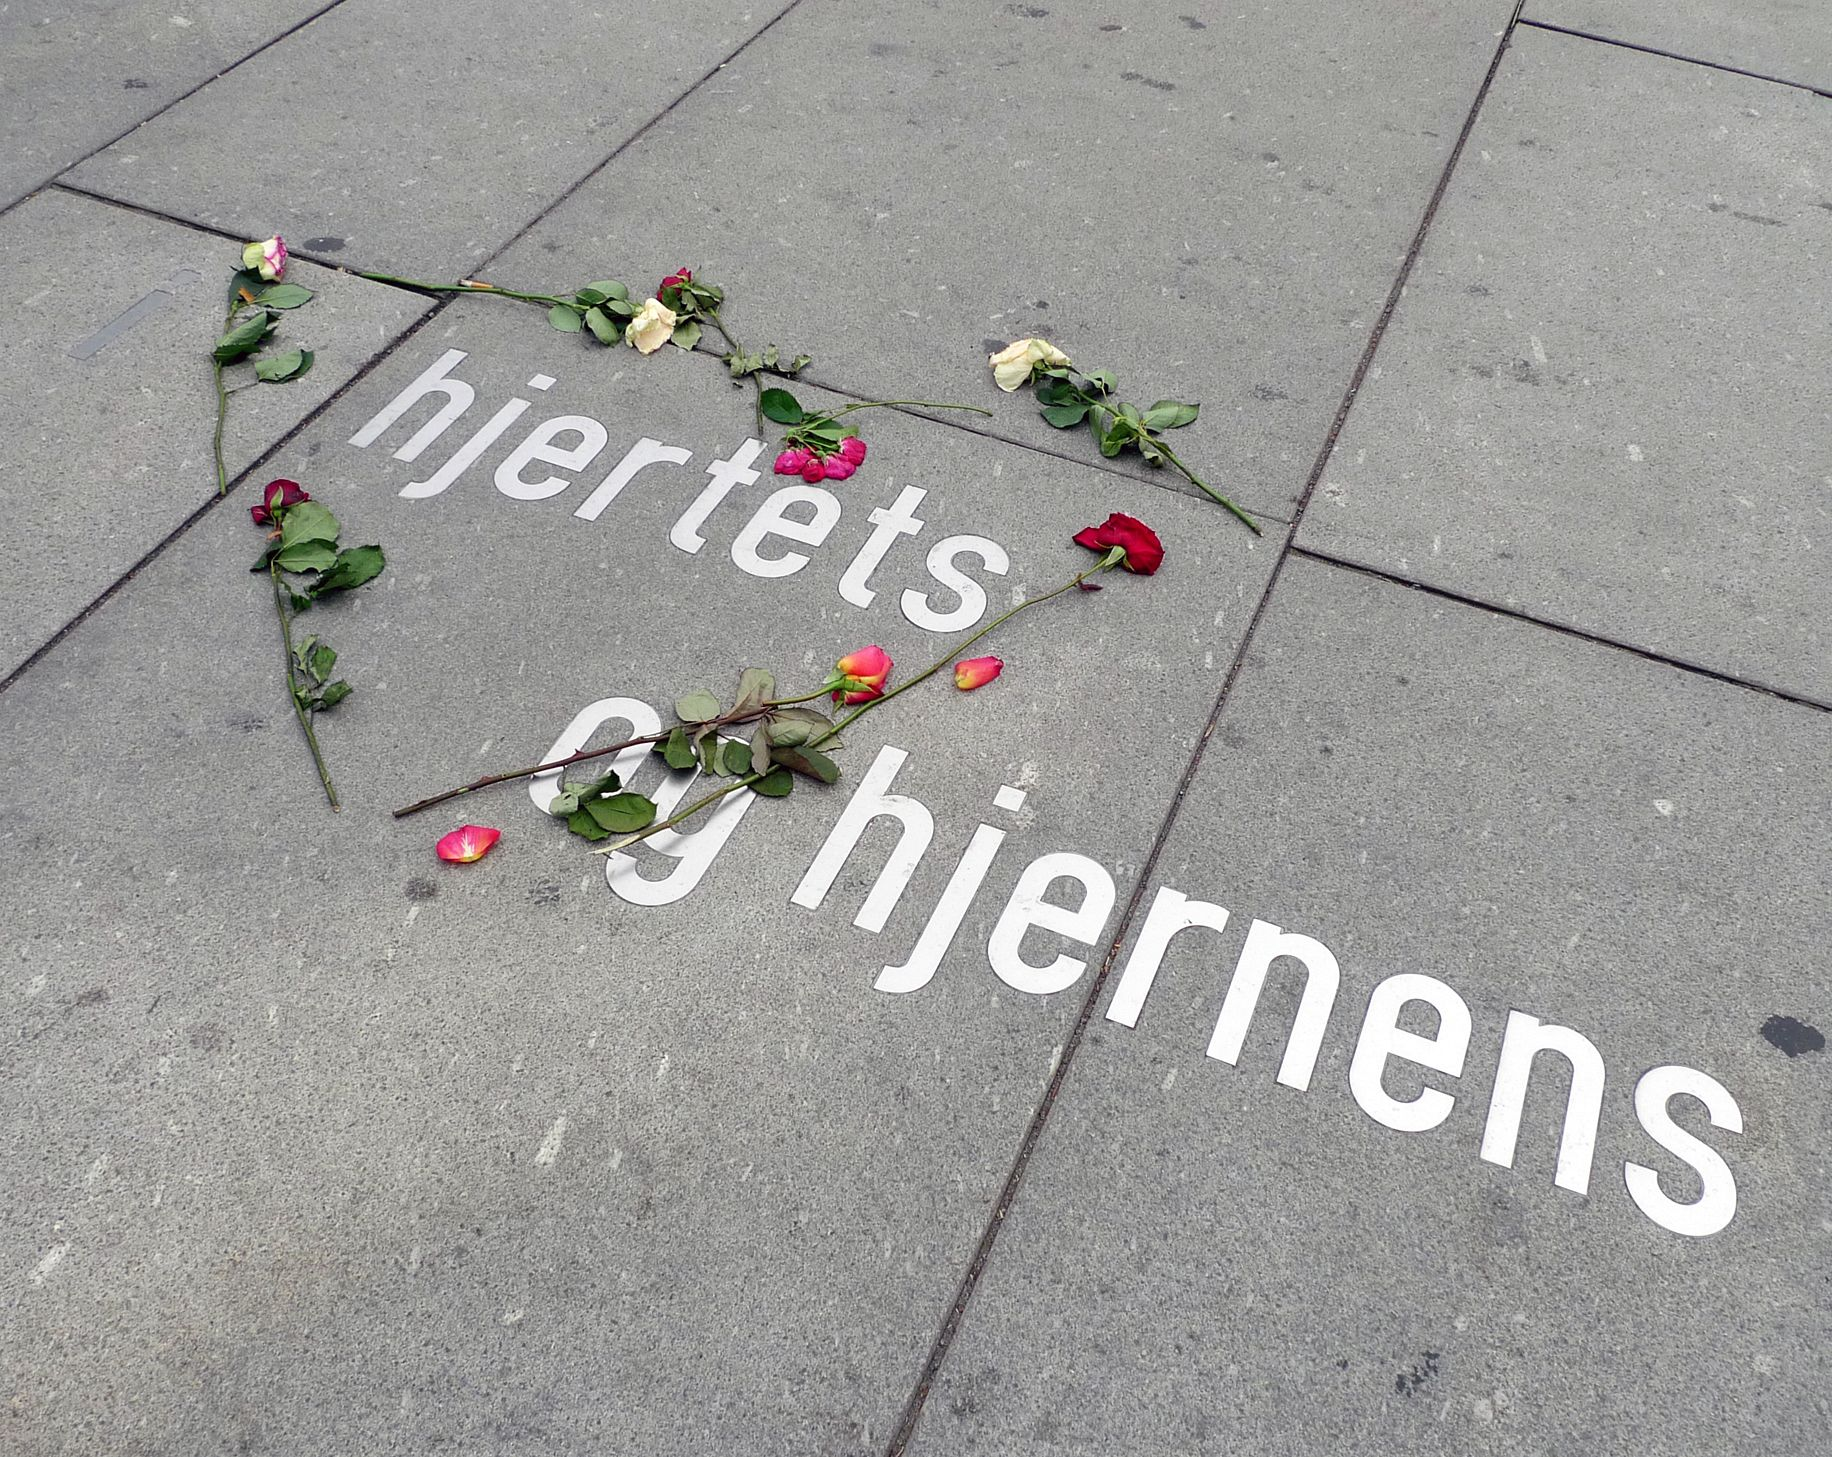 Spontaneous memorial to the victims of the 22nd July terrorist attack, Oslo.